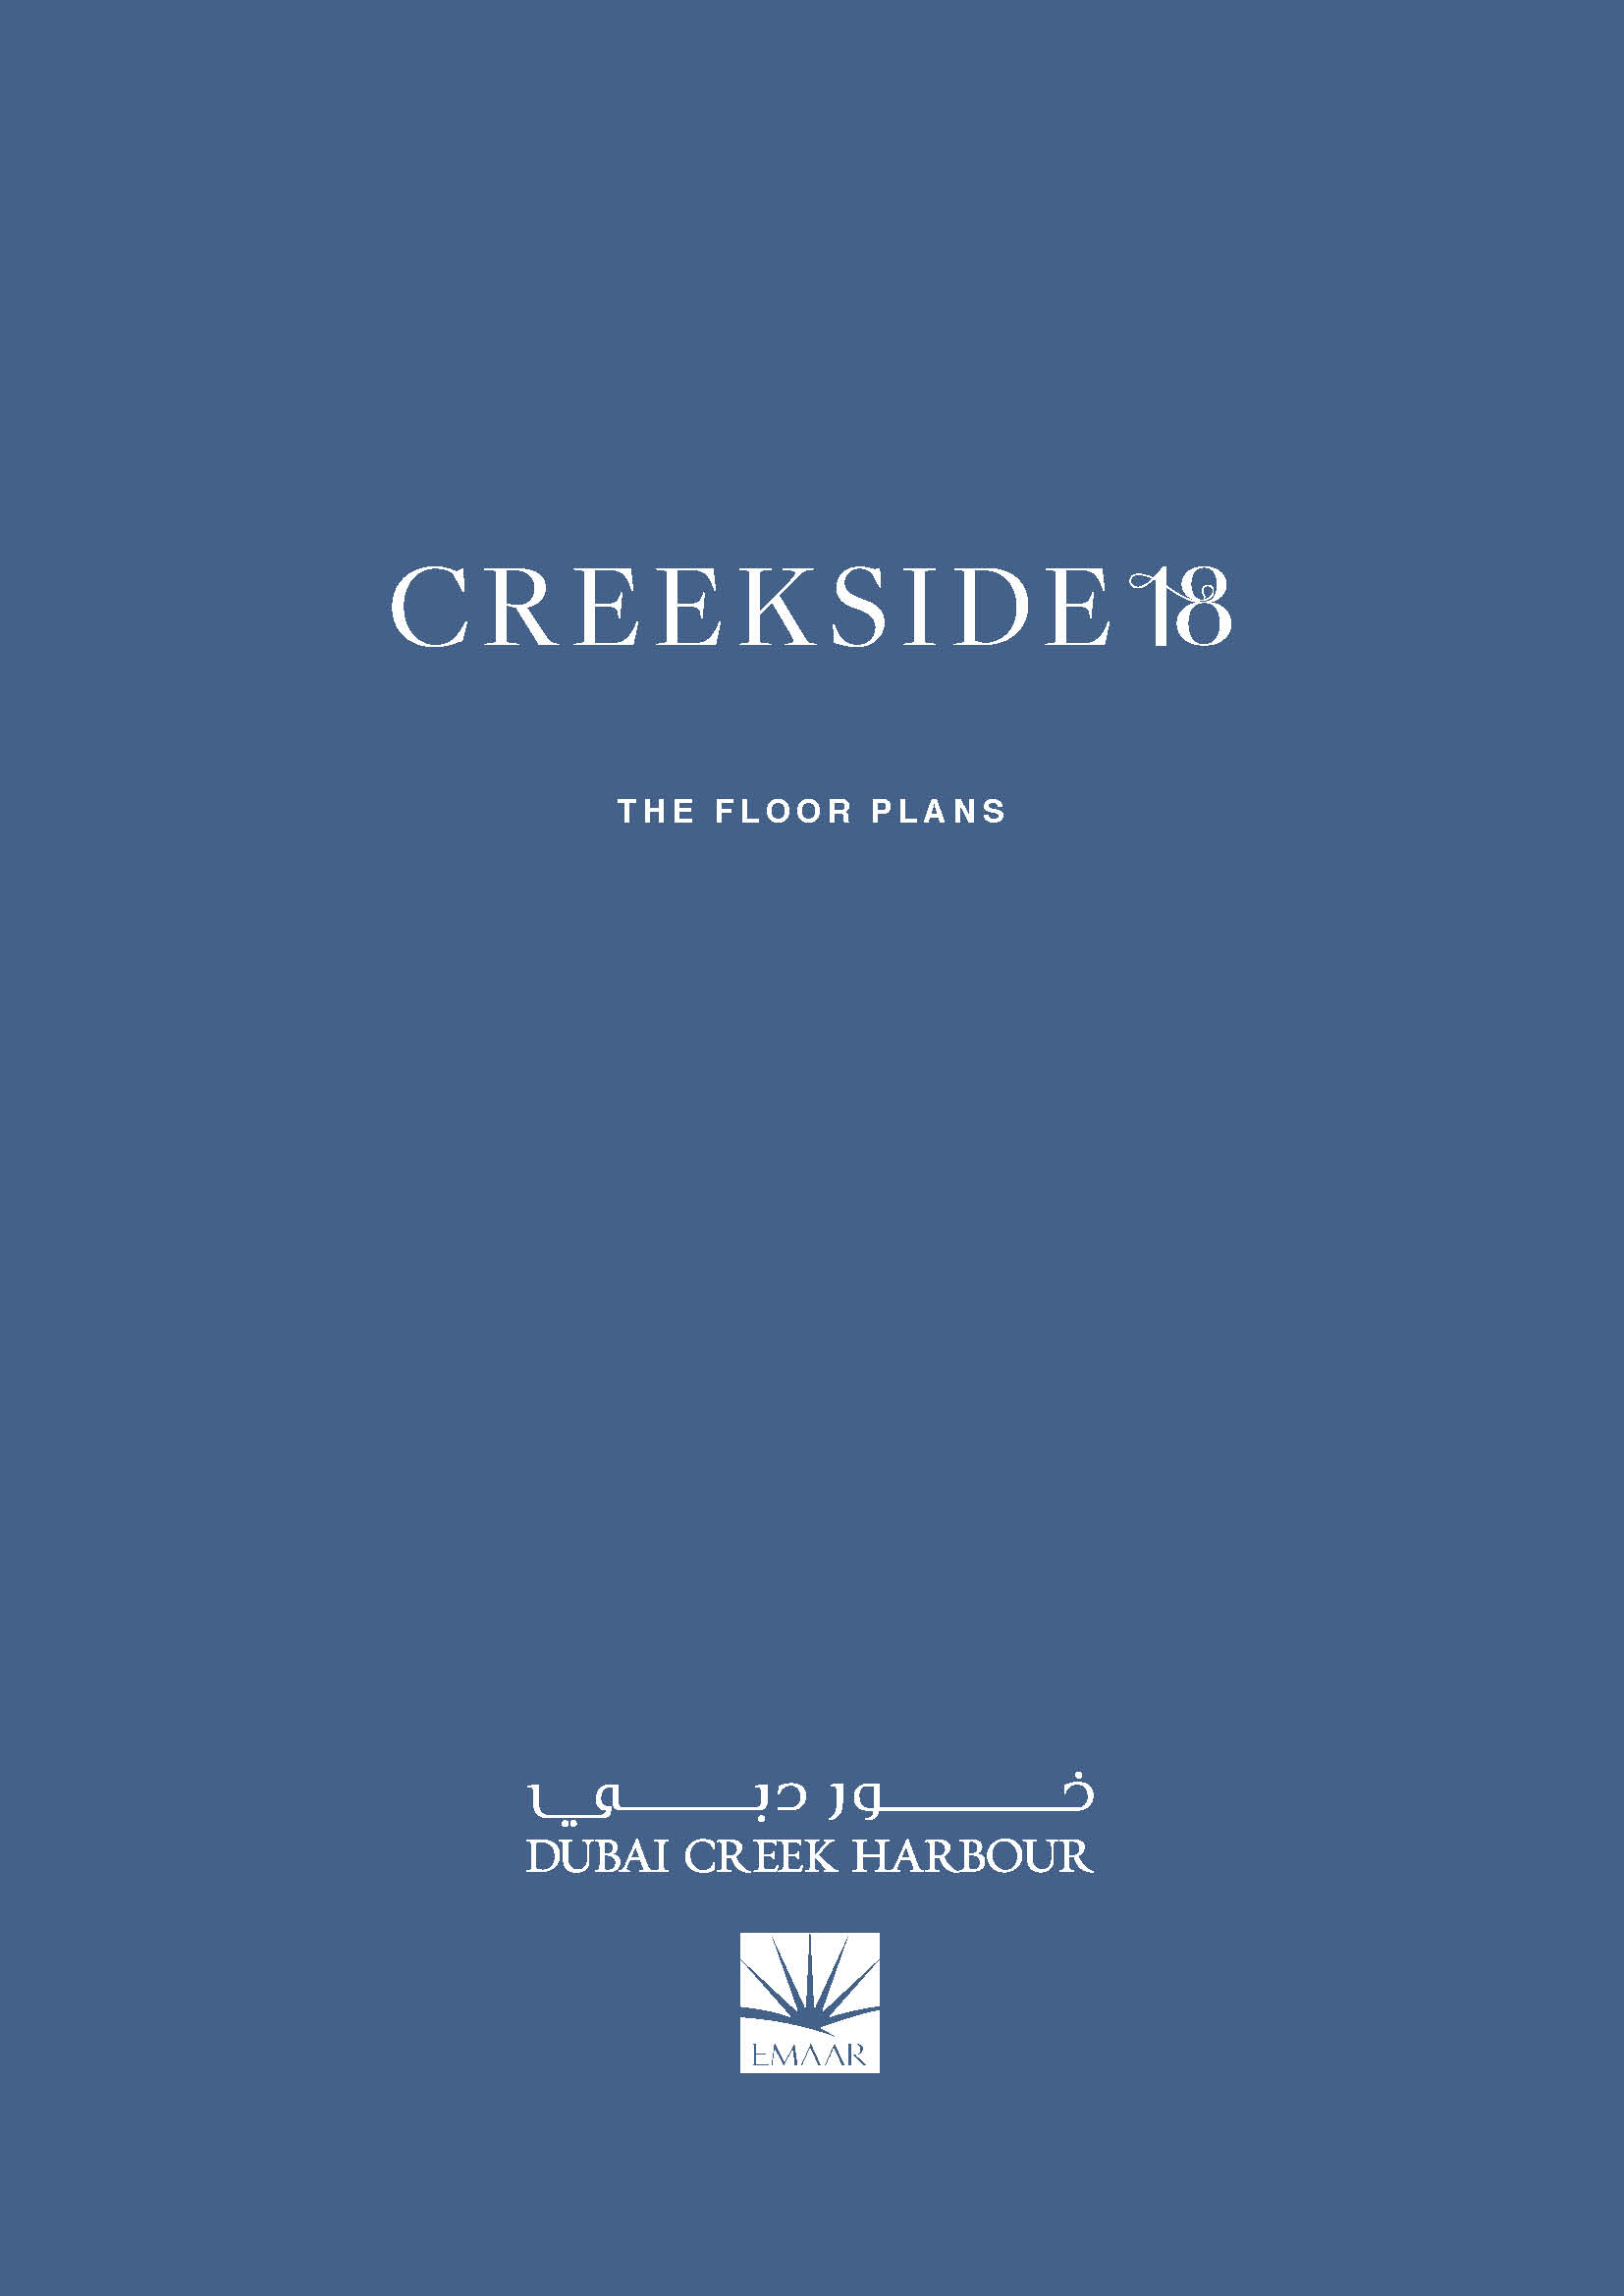 Creekside 18 Tower B Floor Plans